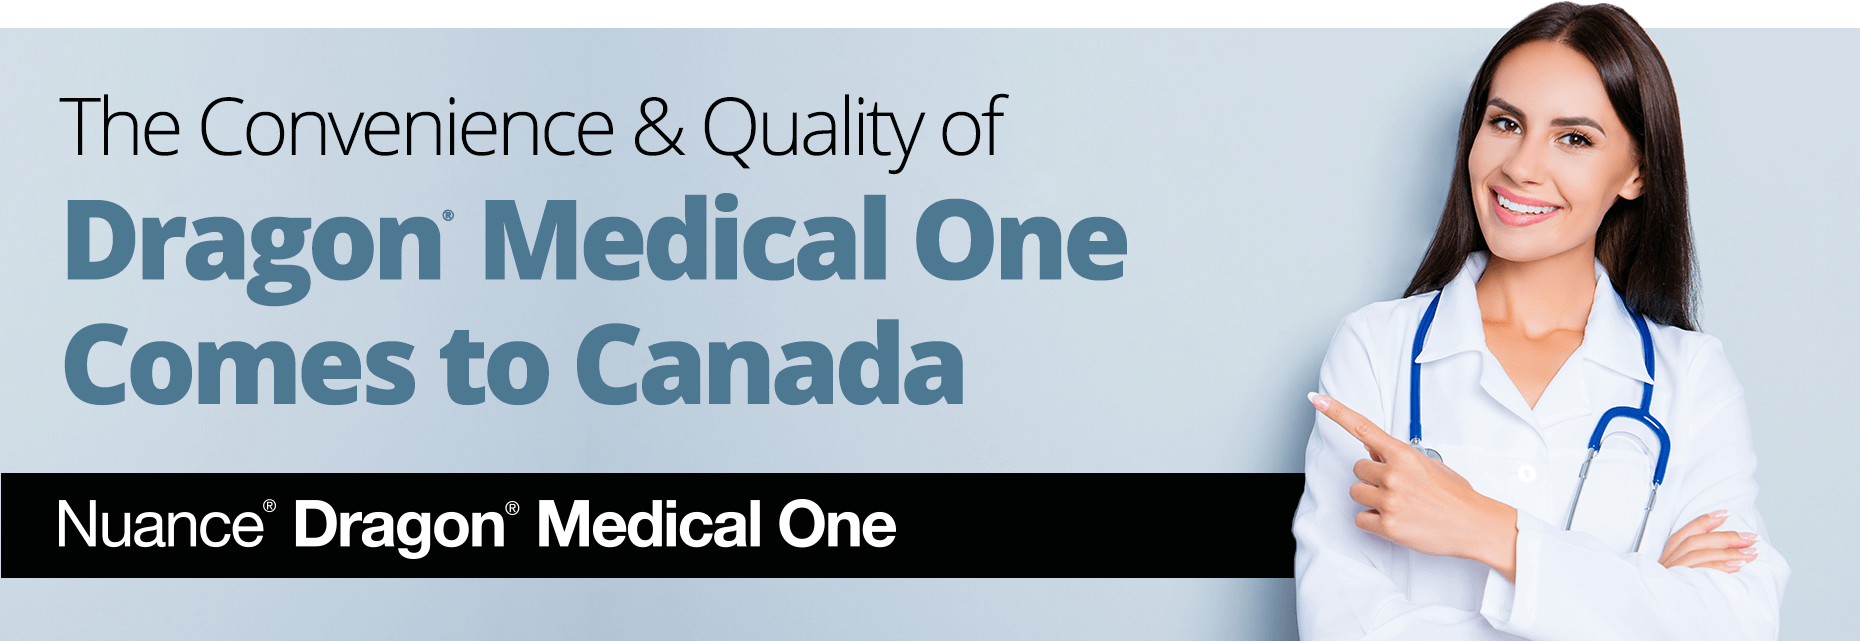 The convience and quality of Dragon Medical One Comes to Canada